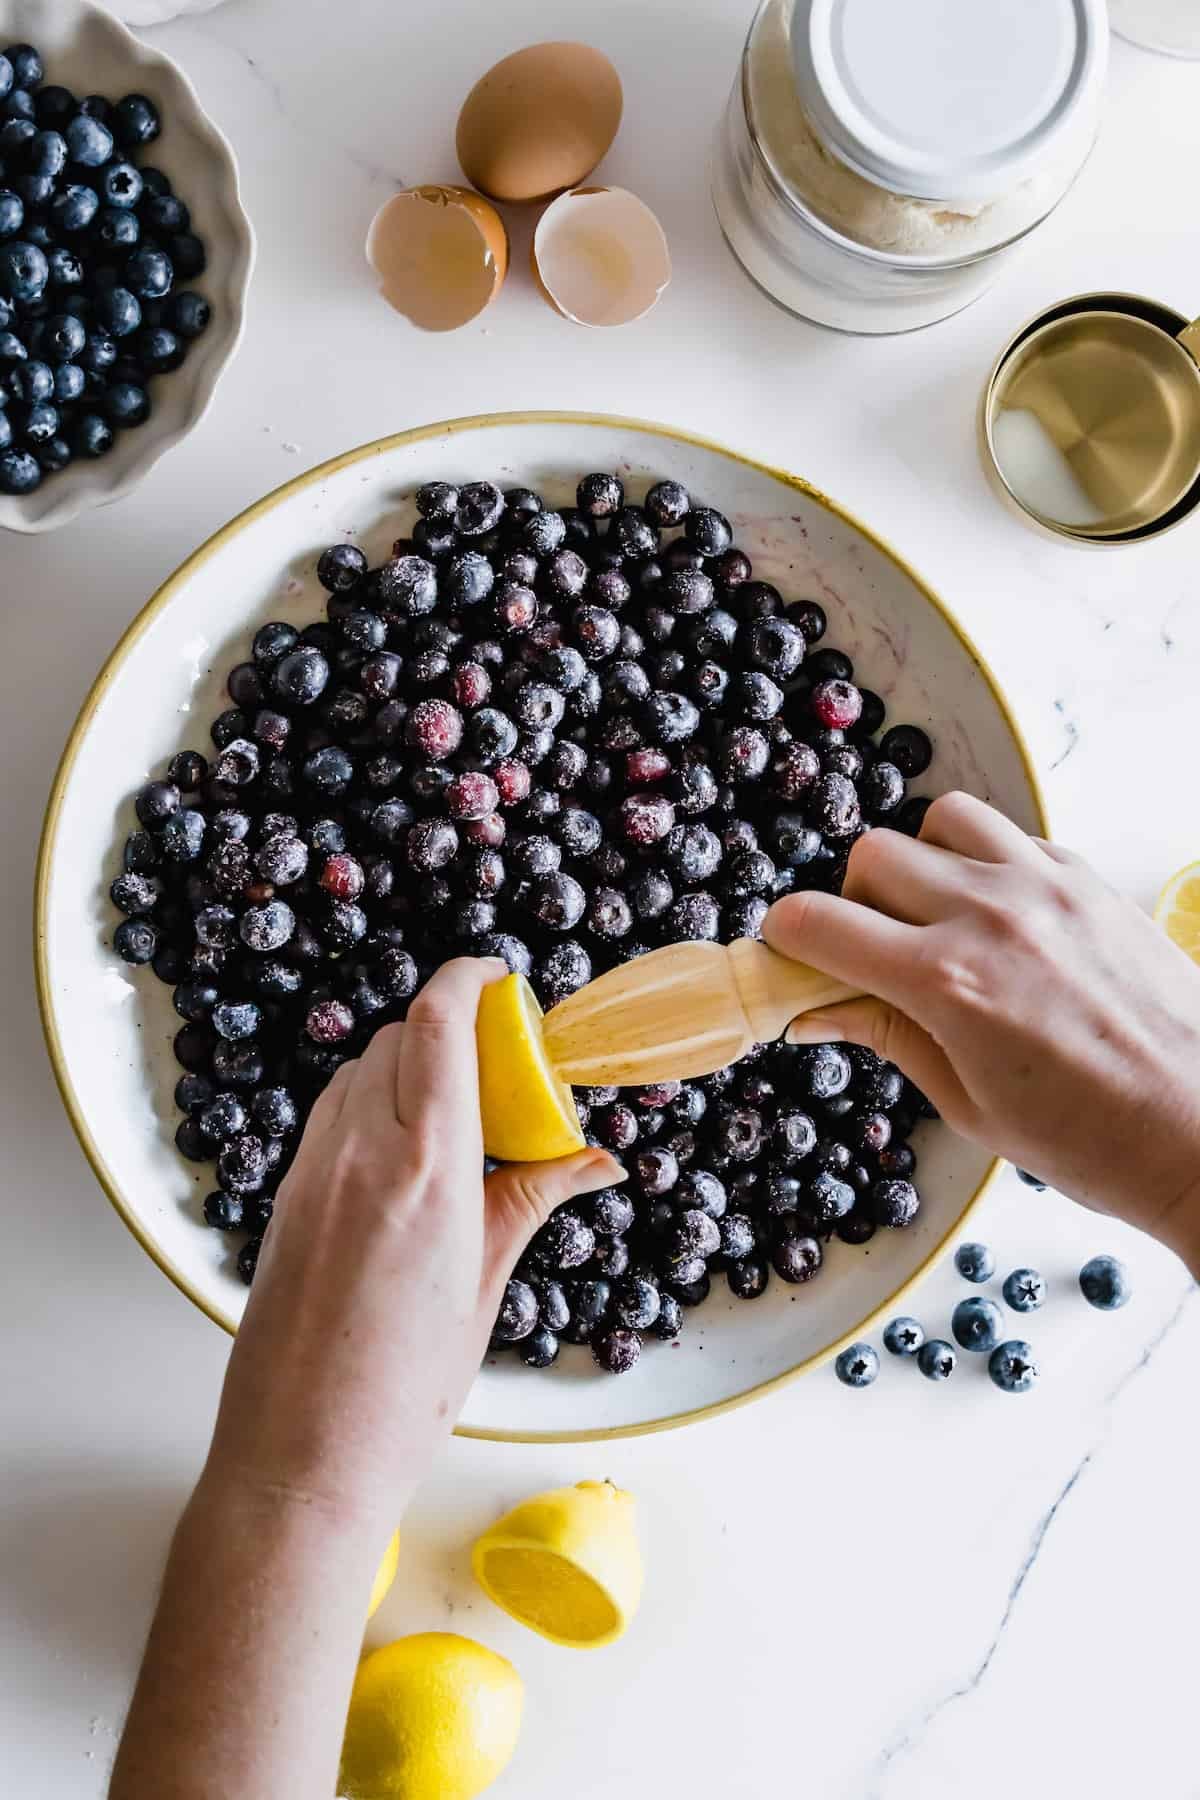 A Lemon Being Juiced Over a Bowl of Fresh Blueberries